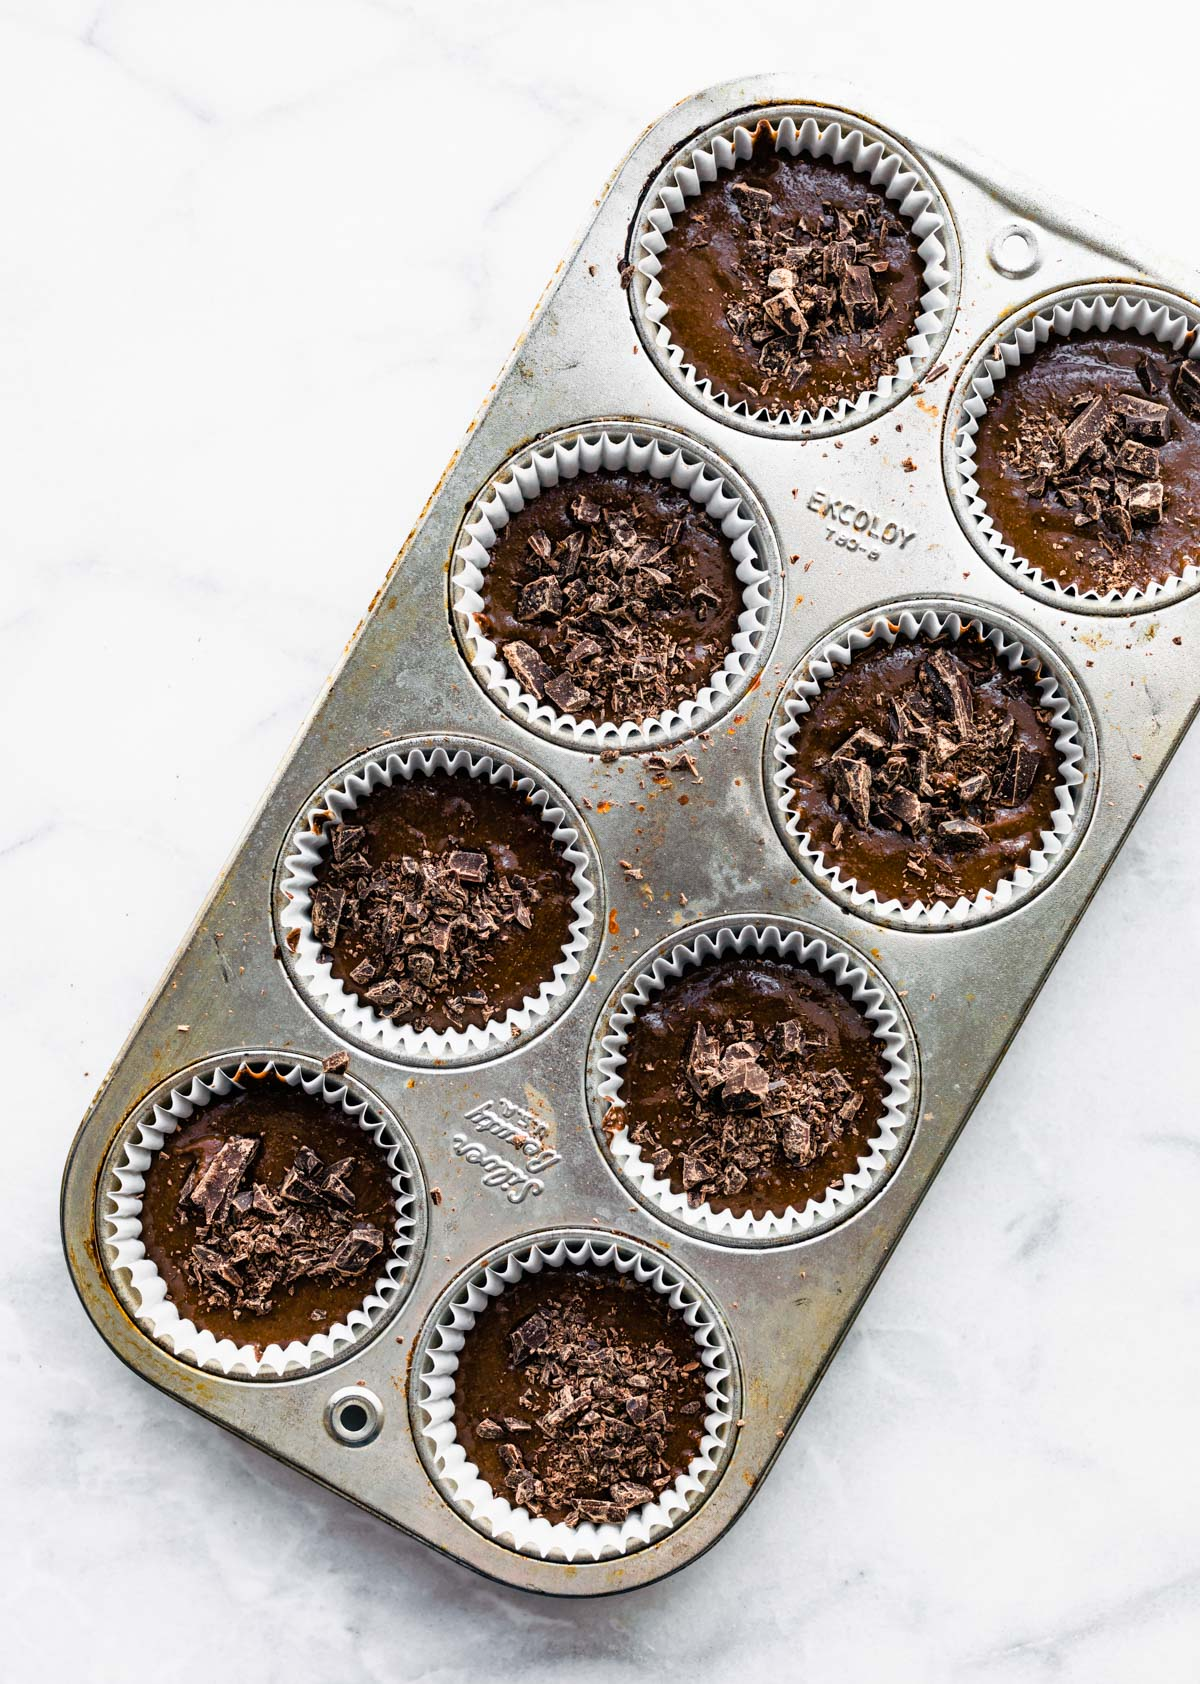 overhead photo: unbaked muffin batter in baking pan